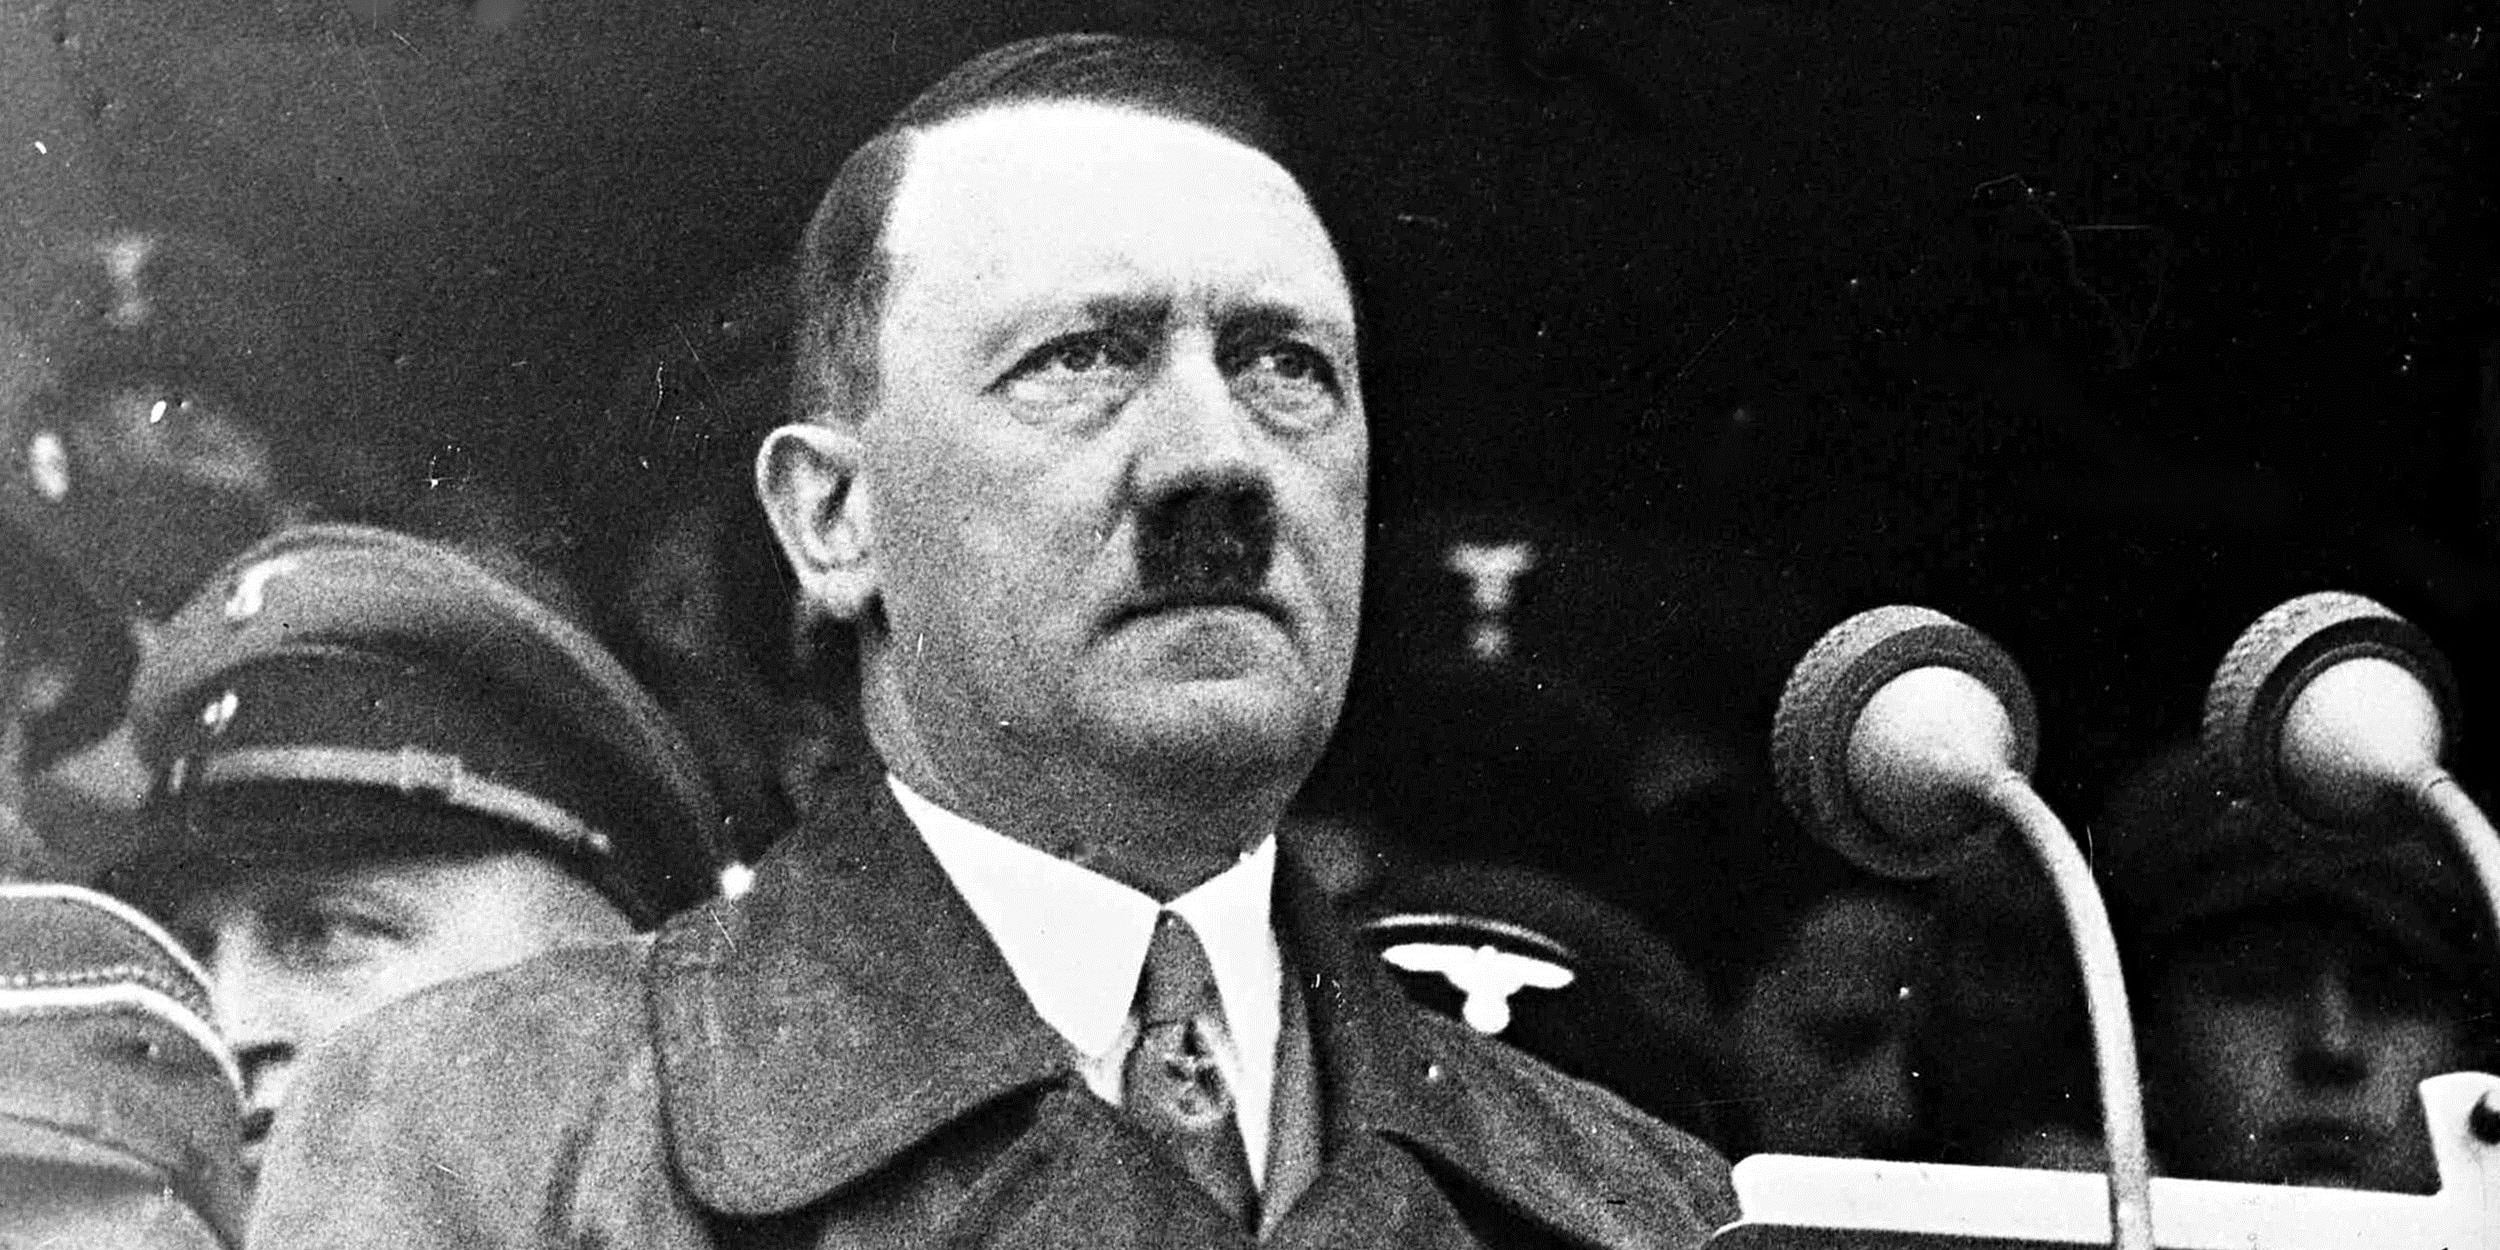 an analysis of adolf hitlers childhood in austria and germany Adolf hitler was responsible for the outbreak of the second world war and the holocaust that resulted in the killing of 6 million jews he was born in braun au am inn, a small town on the border of austria and germany.